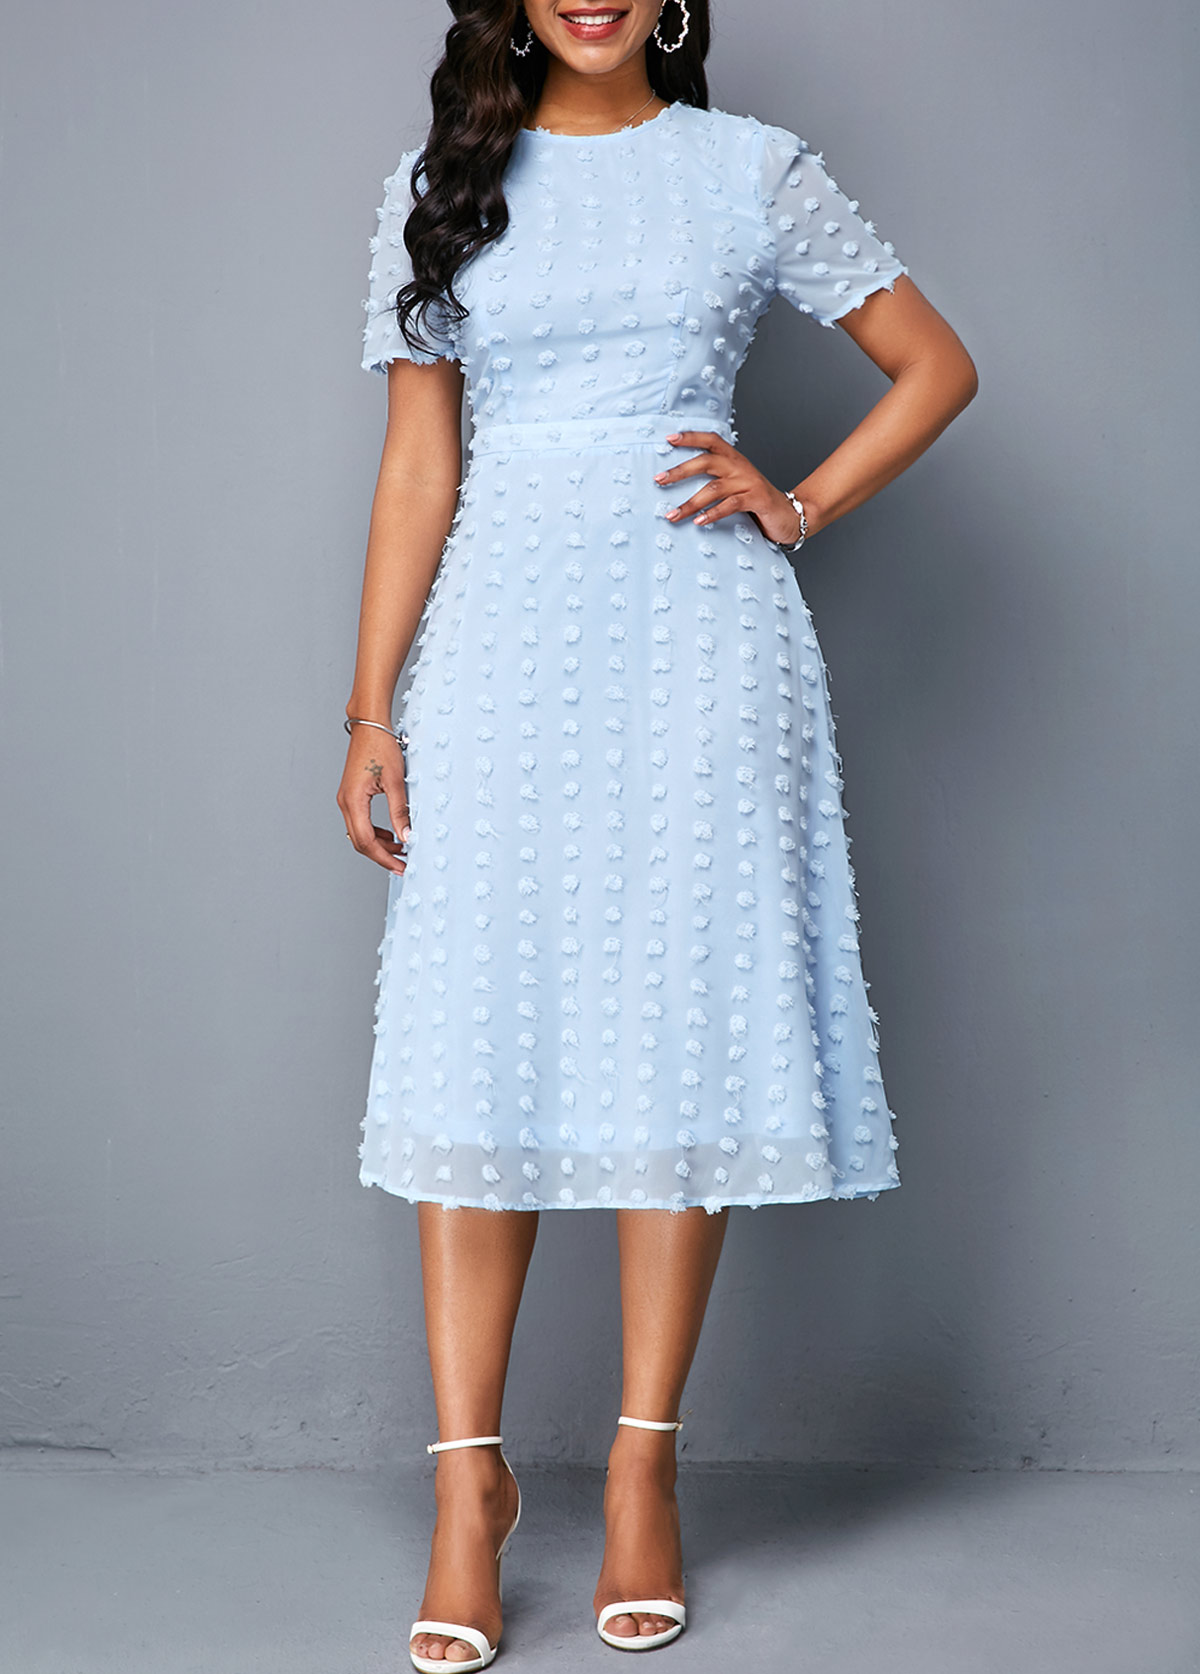 a34fbd9d High Waist Zipper Back Light Blue Dress | Rotita.com - USD $34.98